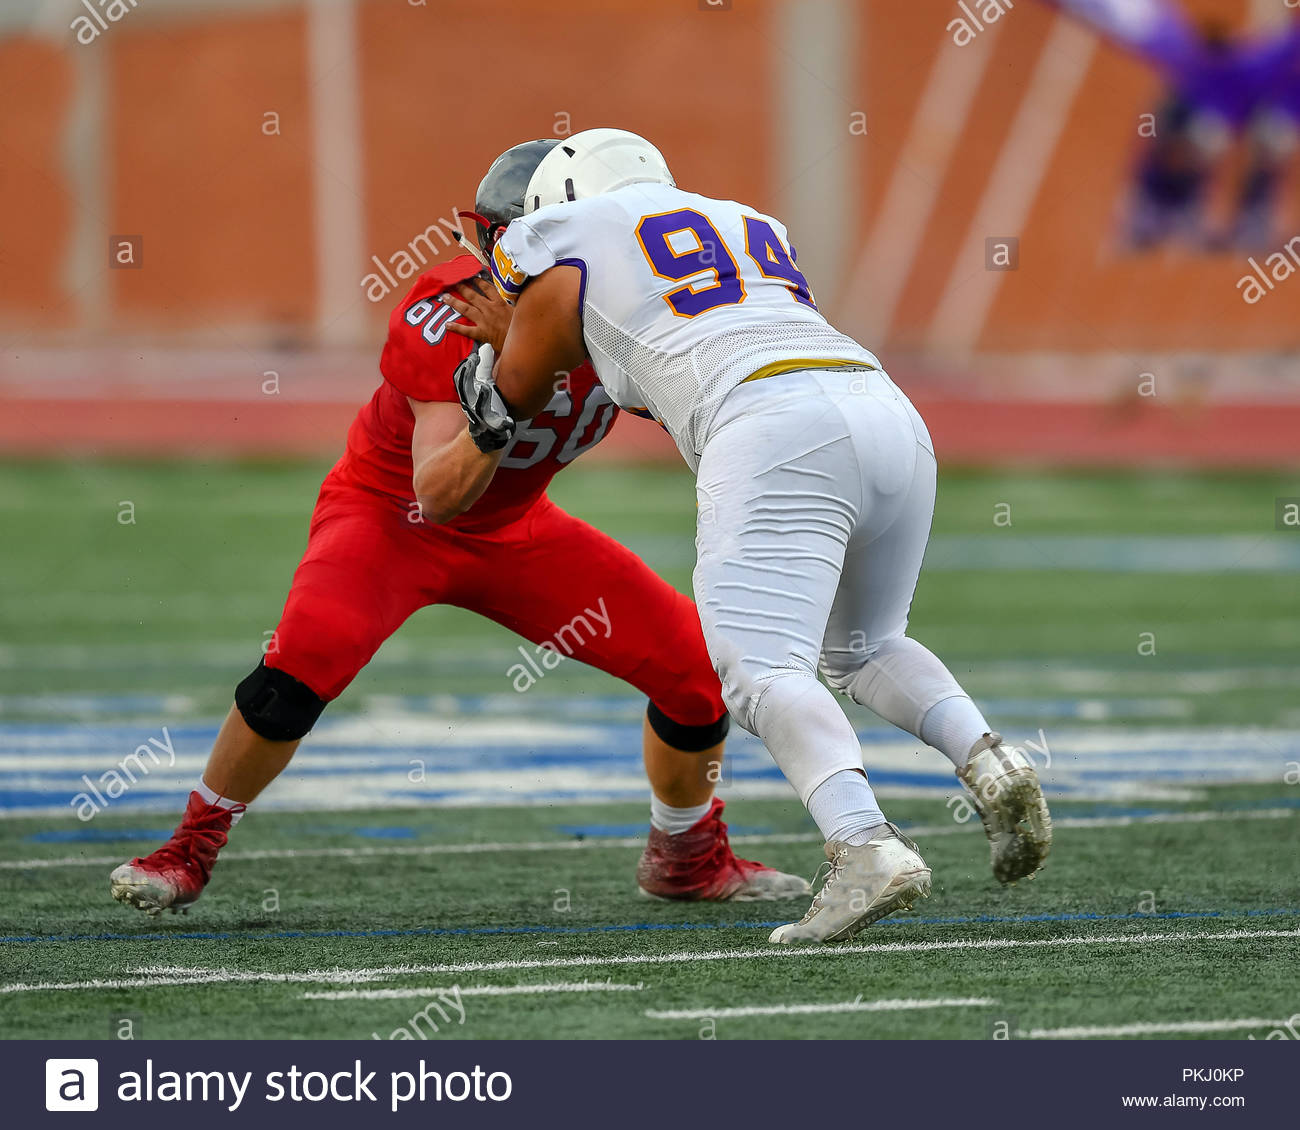 High School Football players making amazing plays during a game - Stock Image